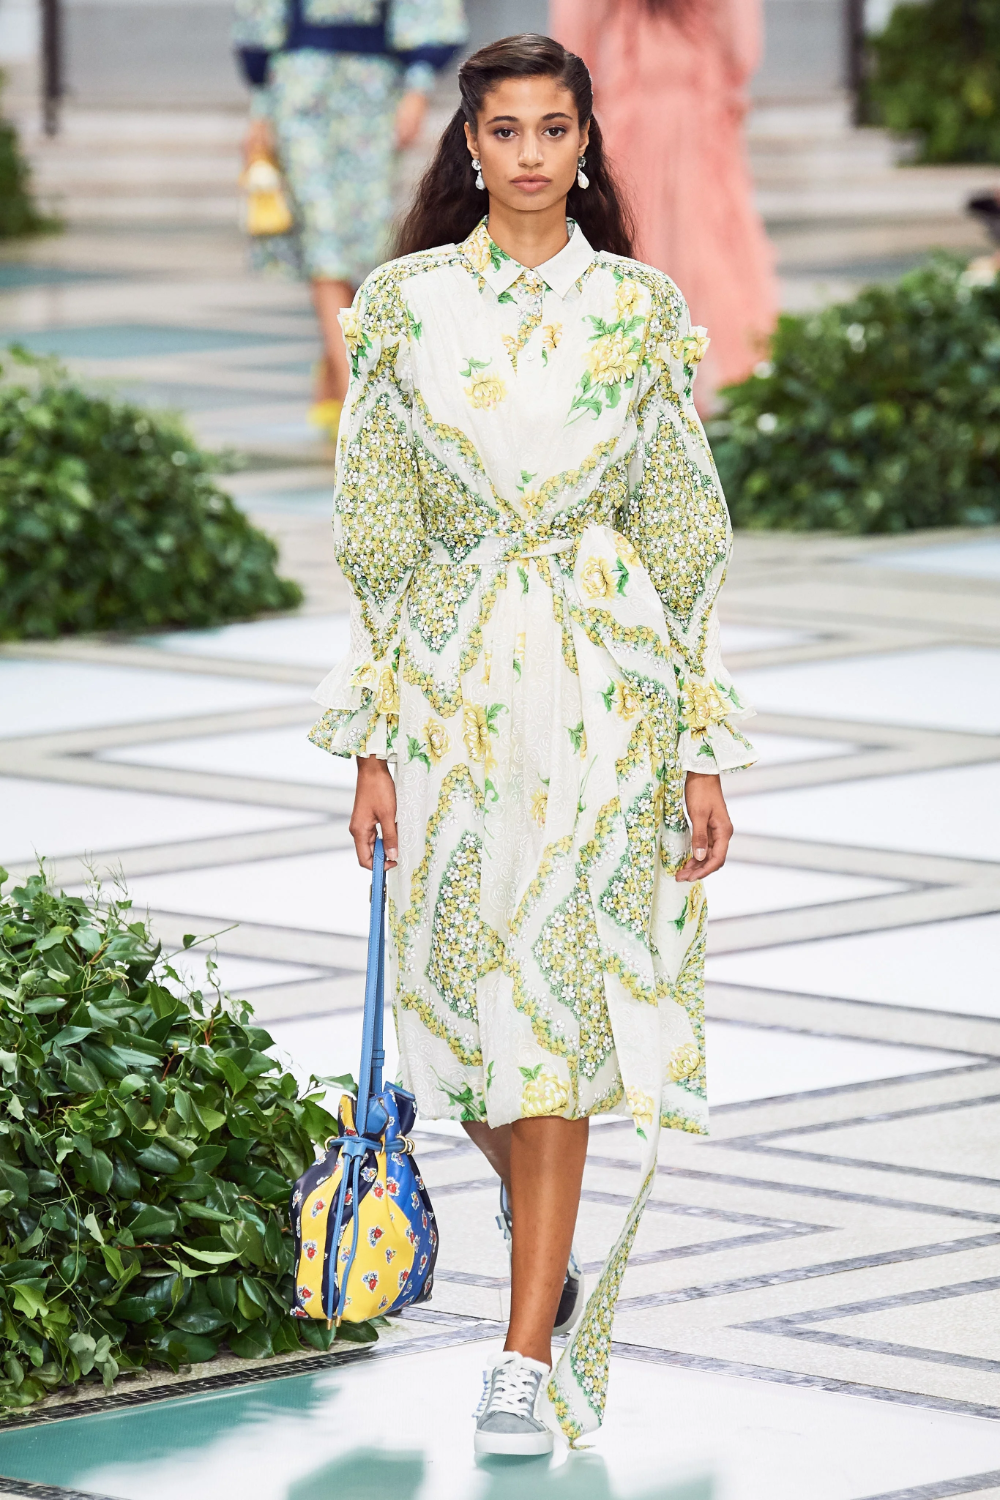 Tory Burch Spring 2020 Ready-to-Wear Fashion Show